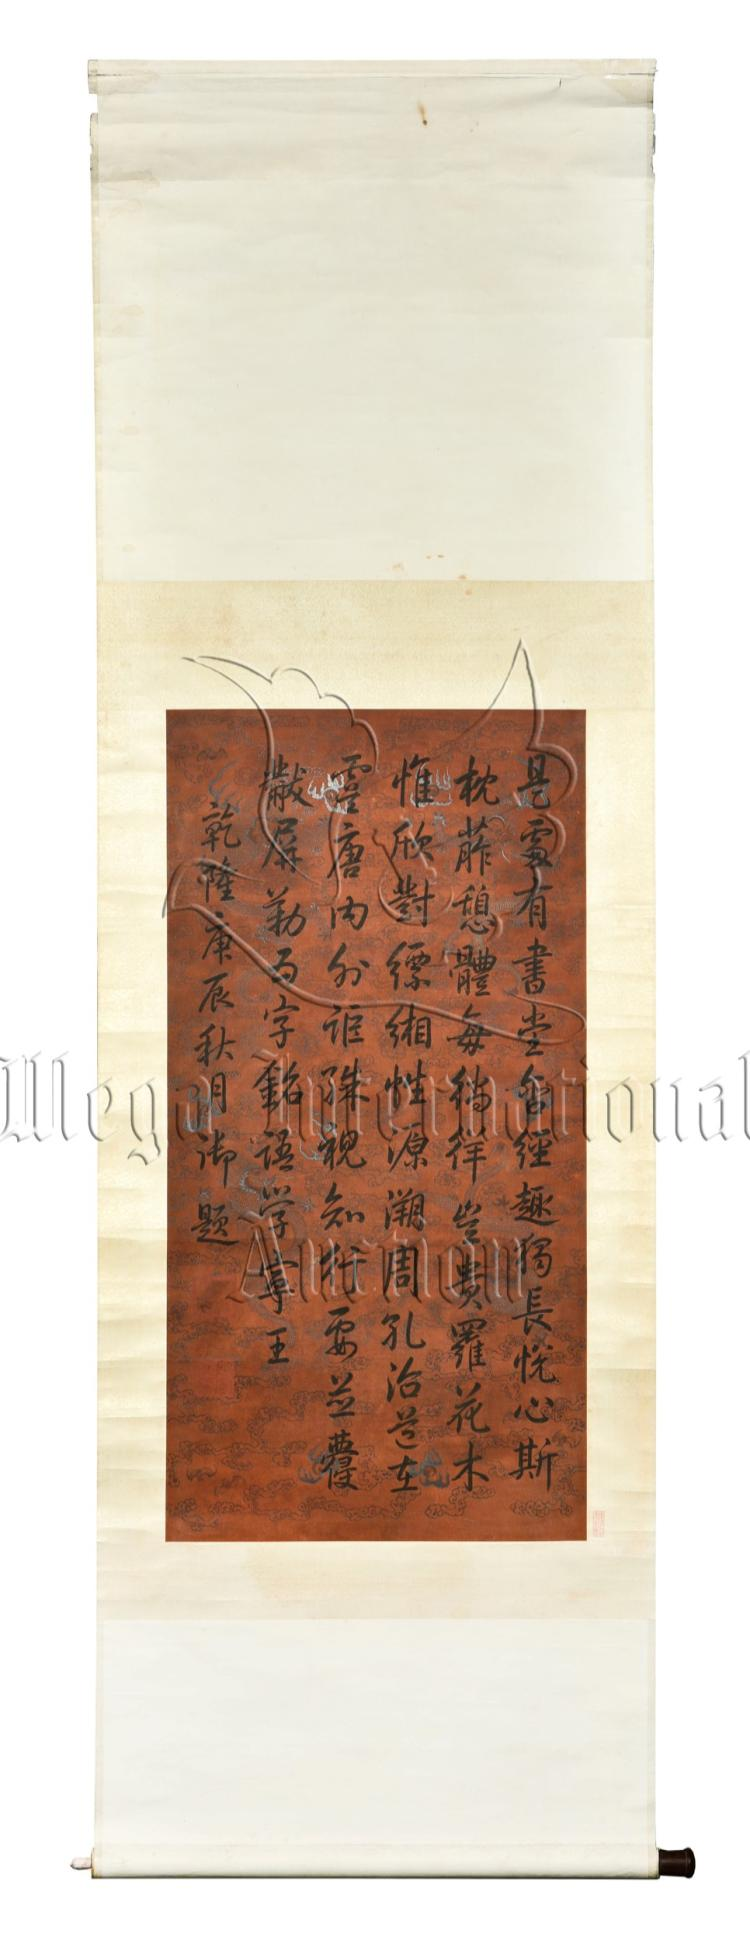 QIANLONG: INK ON EMBROIDERED SILK CALLIGRAPHY